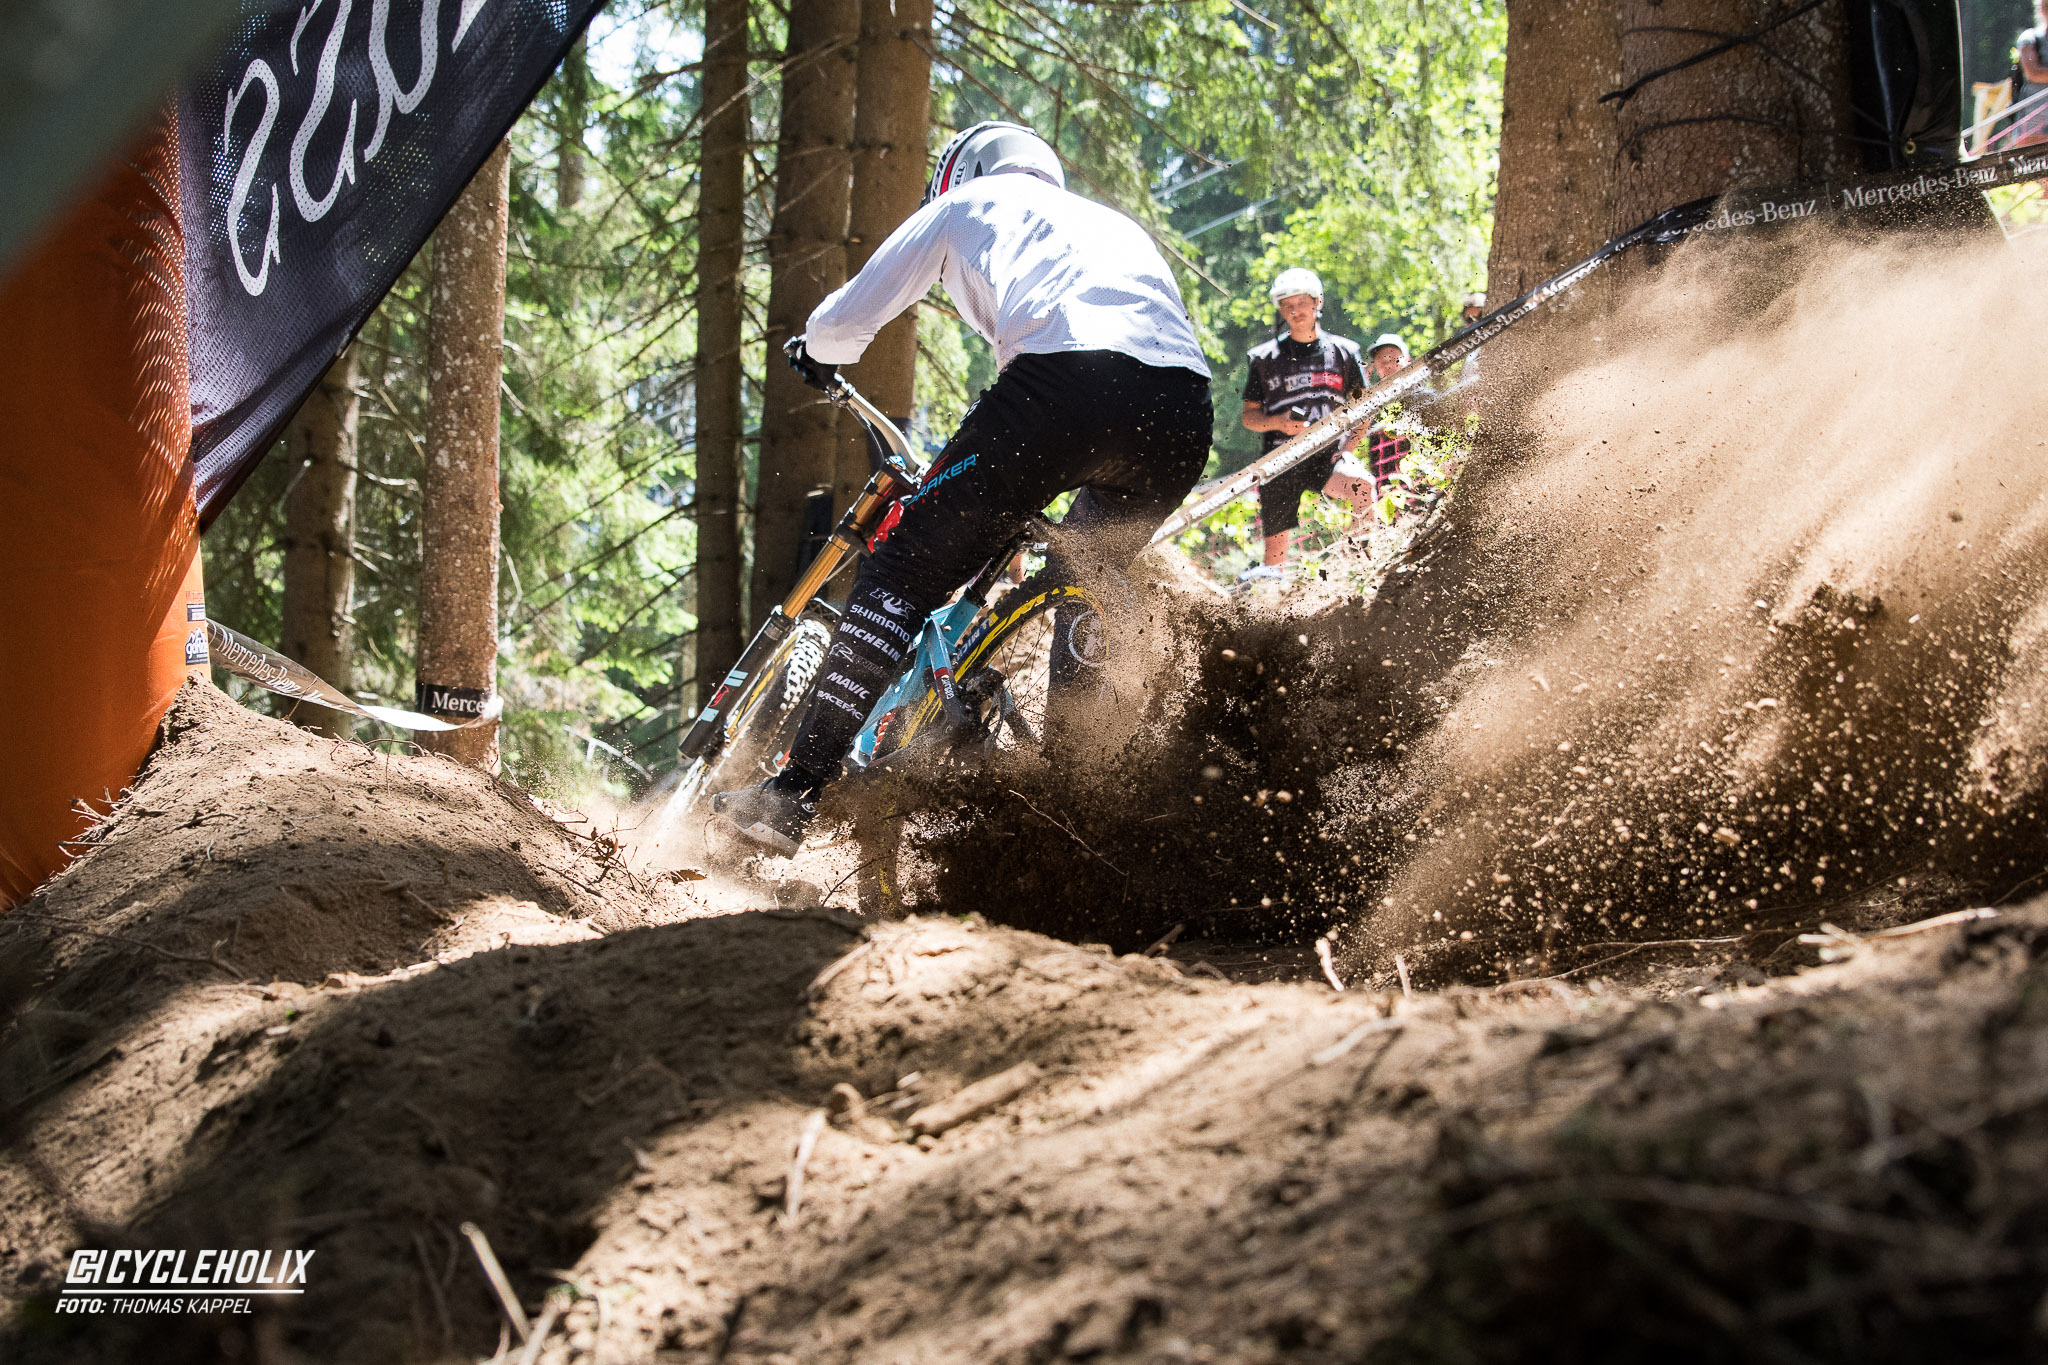 2019 Downhill Worldcup Leogang Finale Action 16 Cycleholix